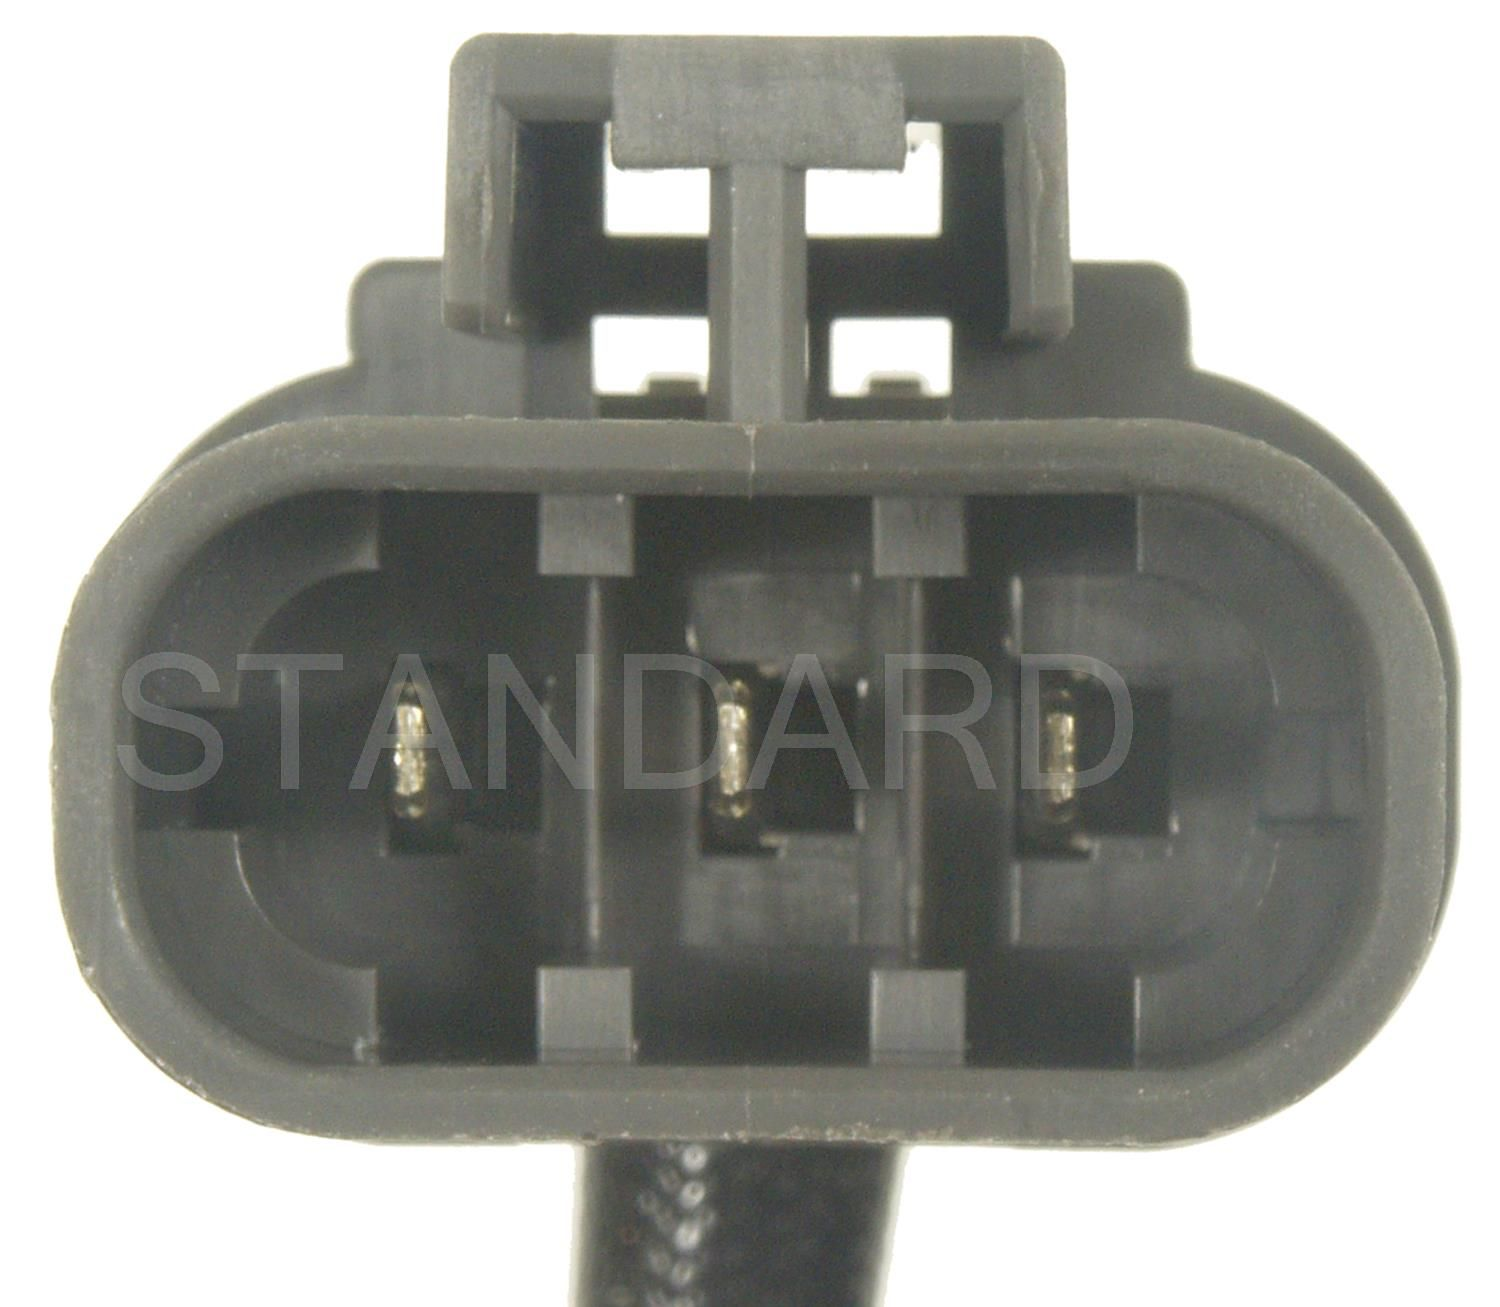 Nissan Pathfinder Oxygen Sensor Replacement Bosch Delphi Denso 1997 Ignition Switch Wiring 1991 1999 Left Standard Sg284 Available While Supplies Last